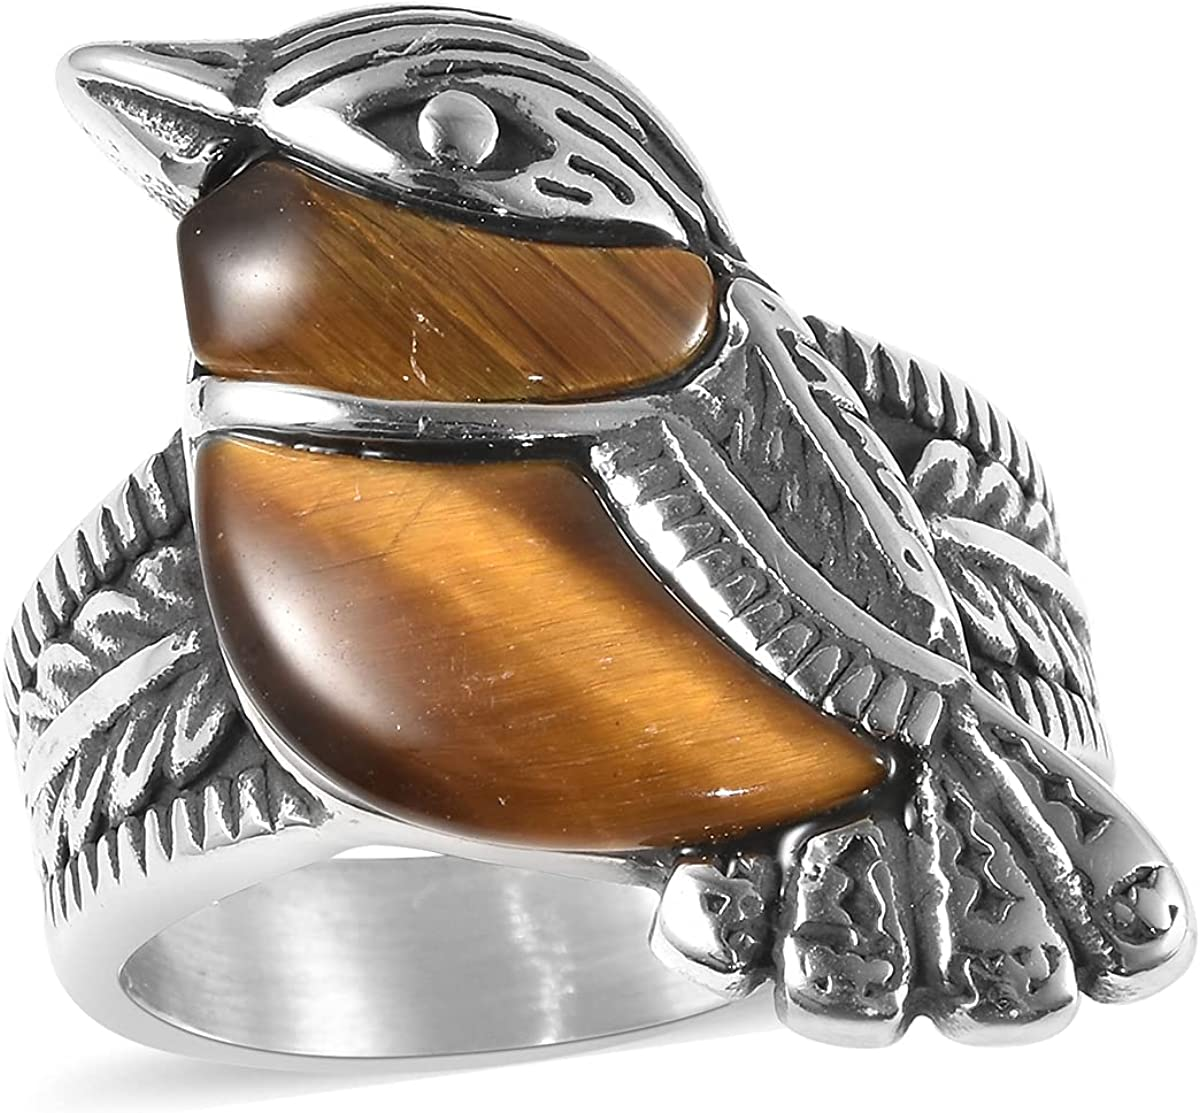 Shop LC Stainless Steel Yellow Tigers Eye Sparrow Bird Cute Statement Ring Costume Stylish Unique Jewelry for Women